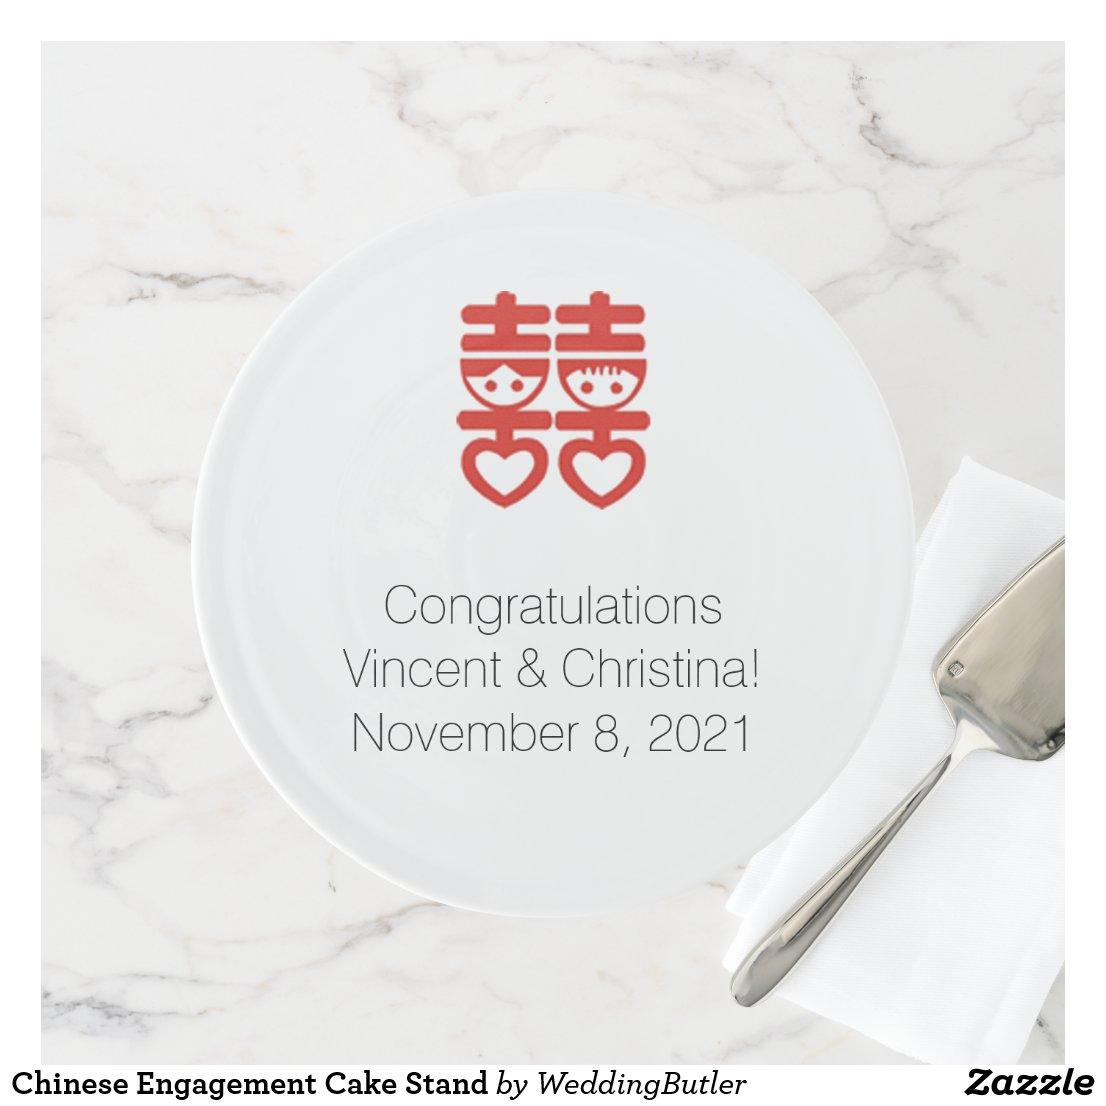 Chinese Engagement Cake Stand